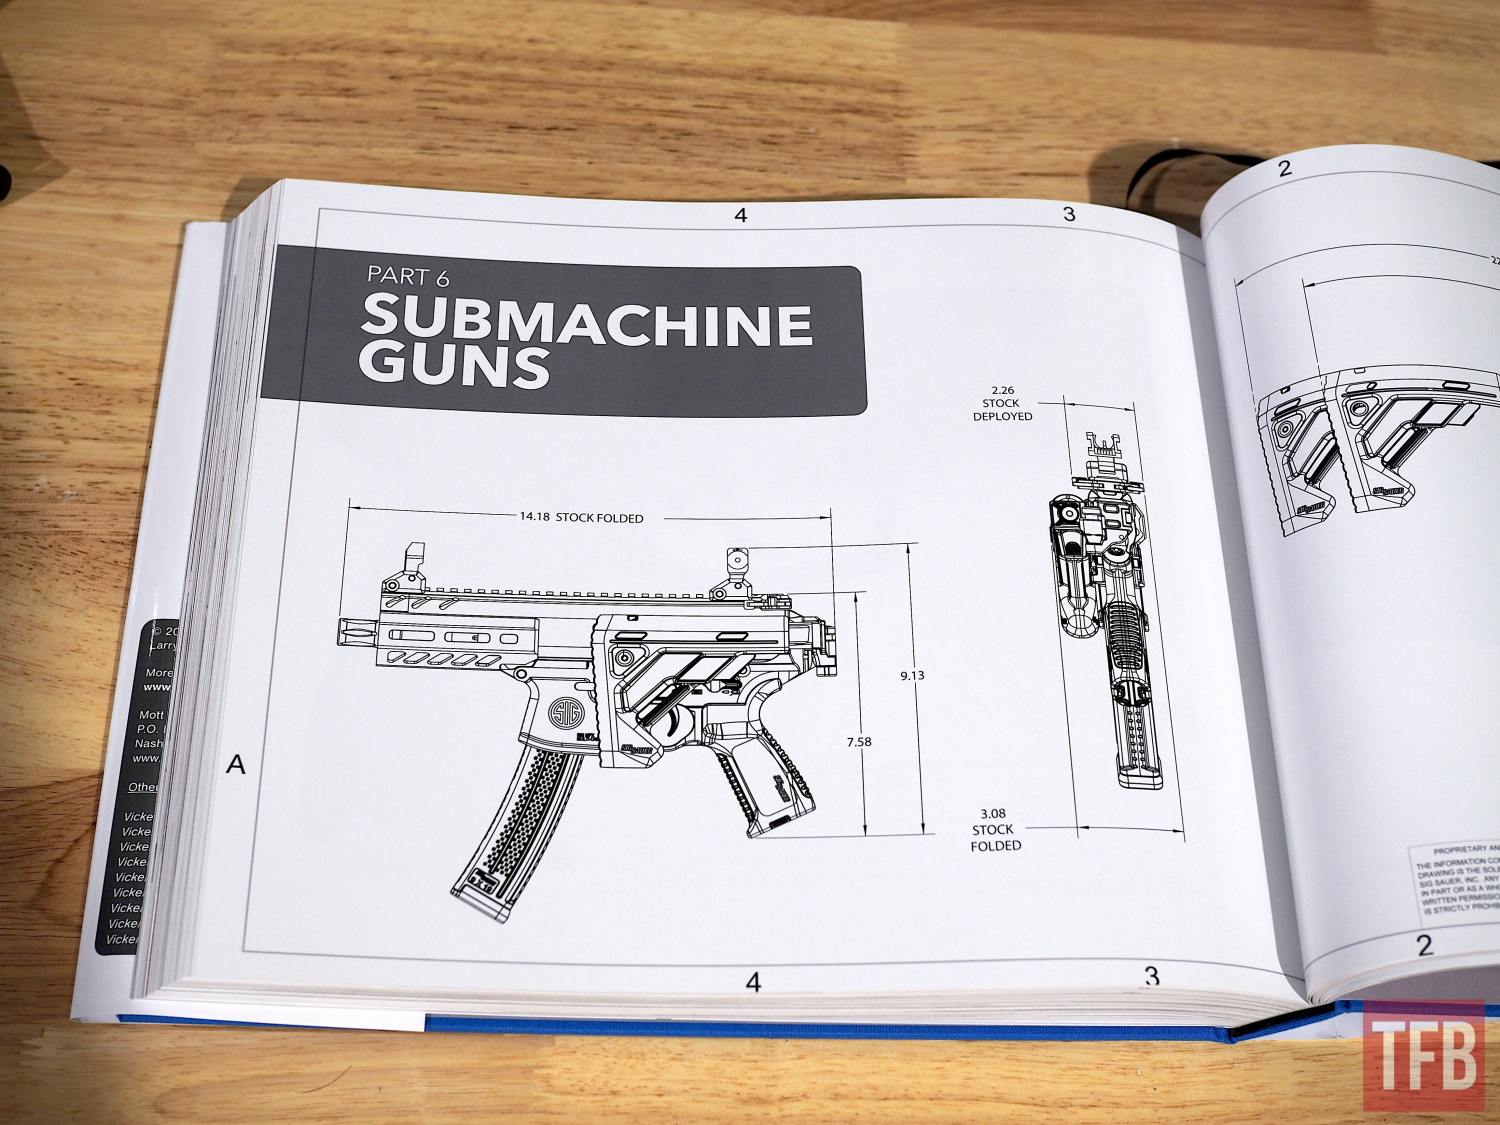 The section on Sig's submachine guns was utterly fascinating